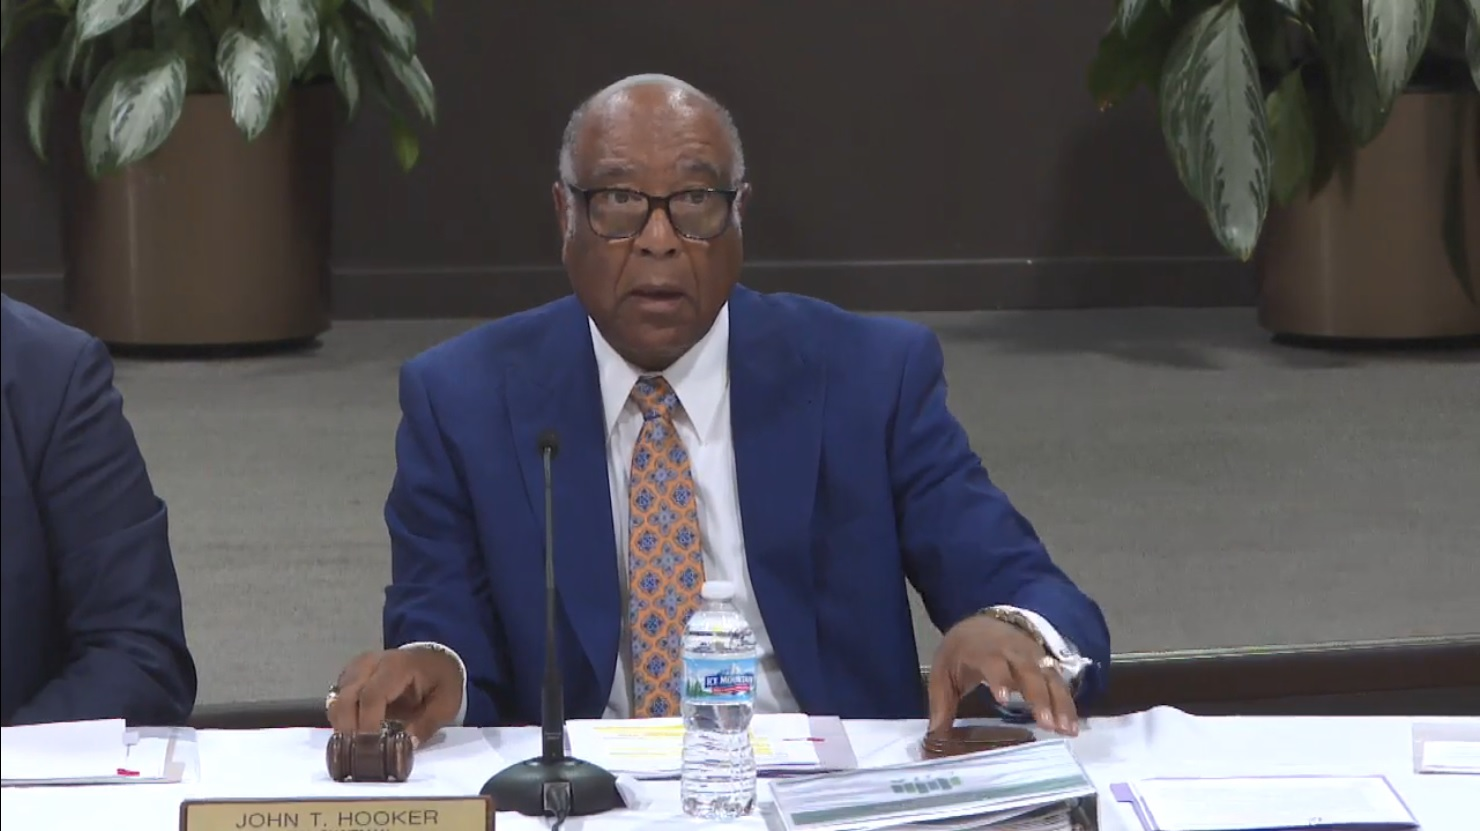 Chicago Housing Authority Board Chair To Step Down